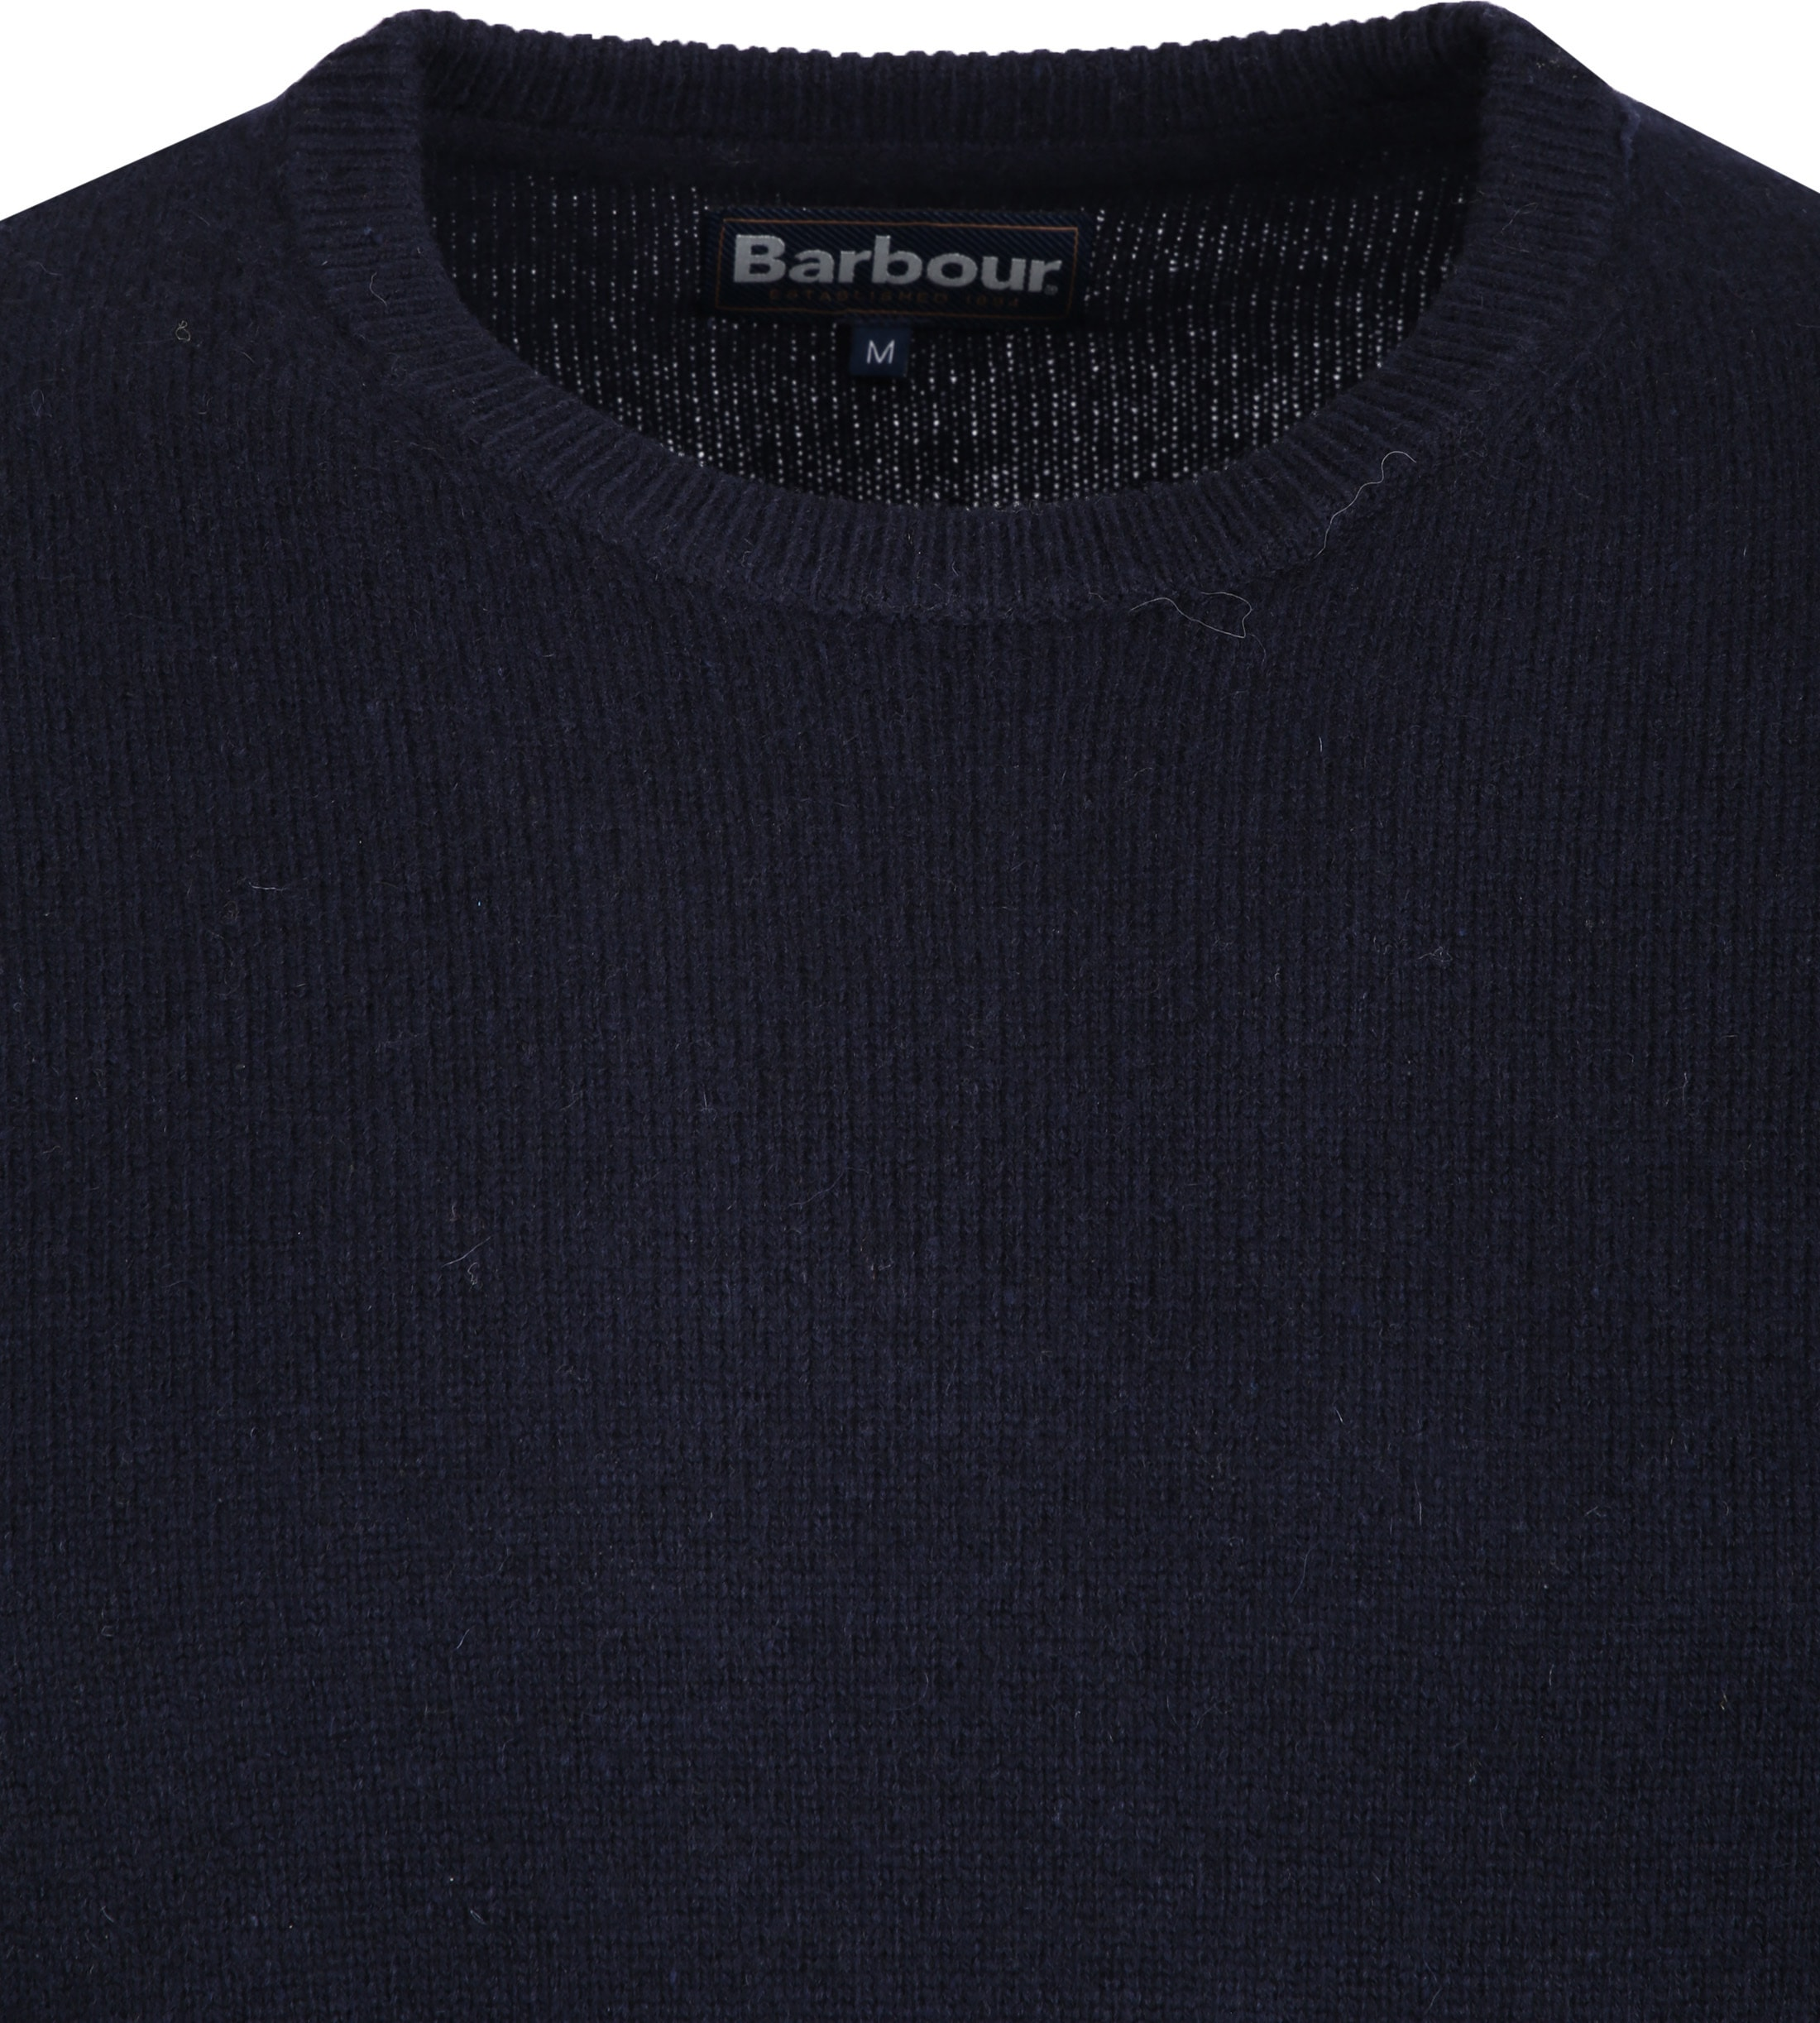 Barbour Patch Pullover Marine foto 1